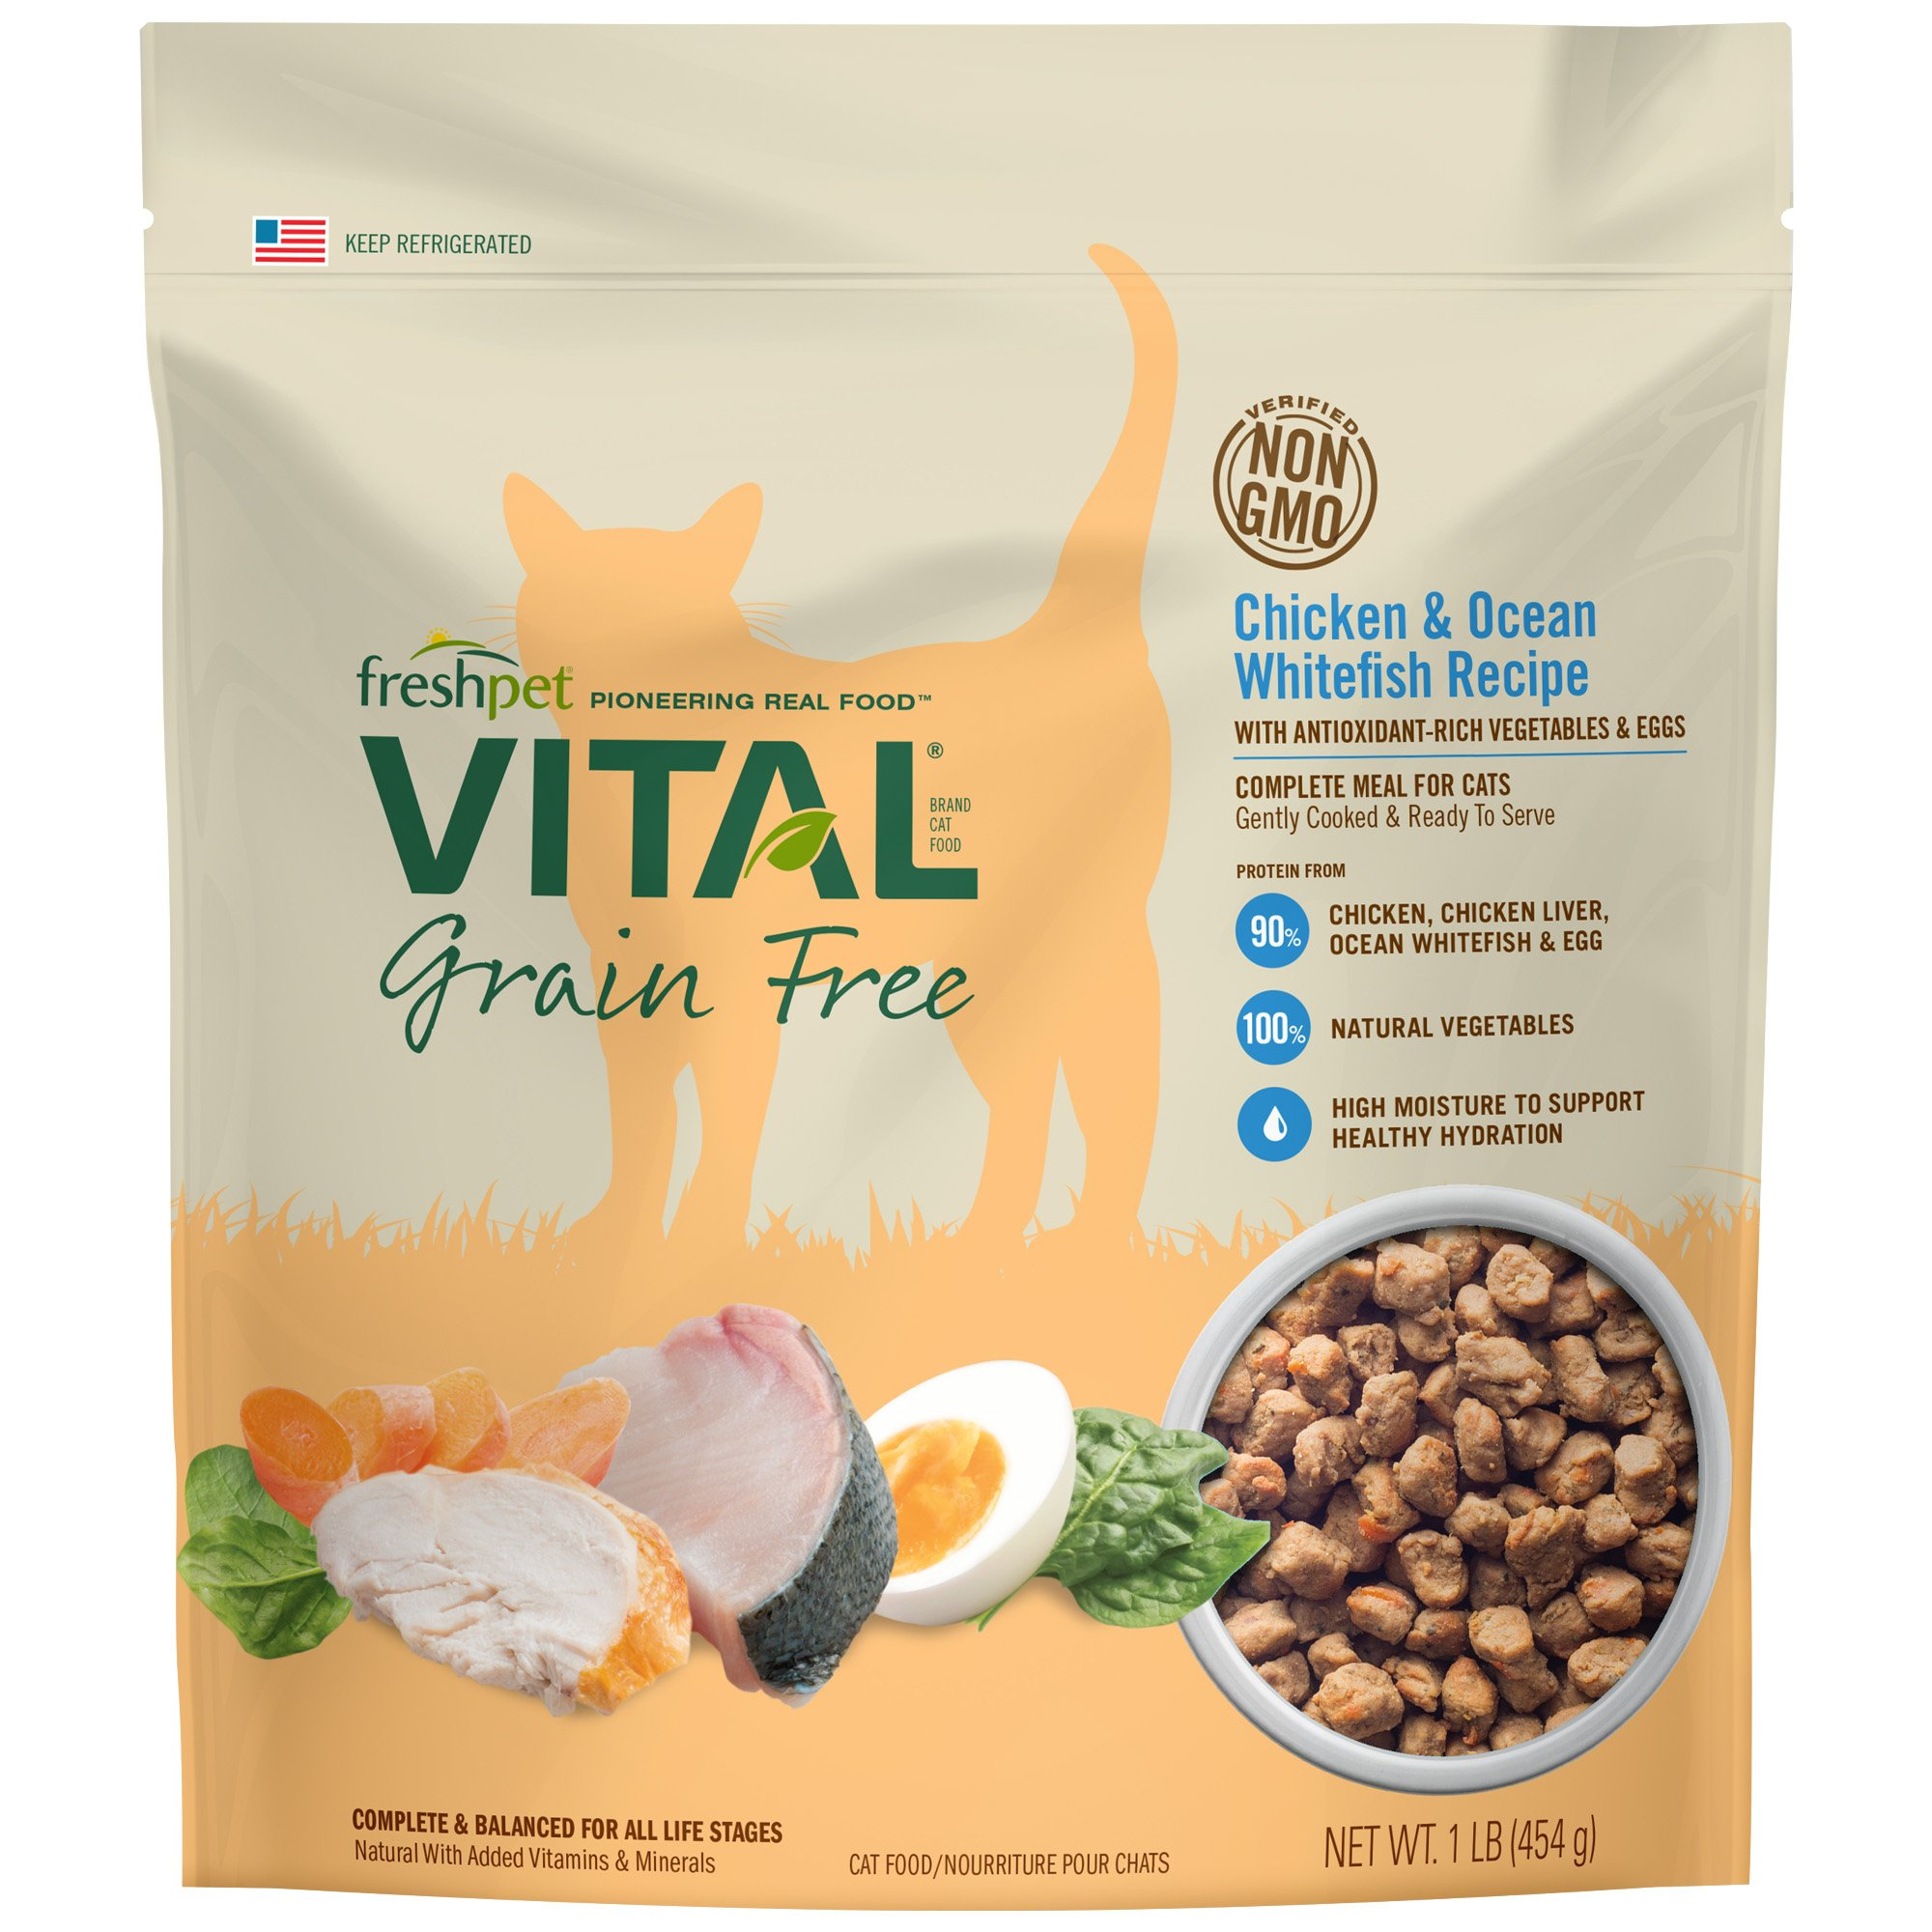 Whole Foods Refrigerated Dog Food